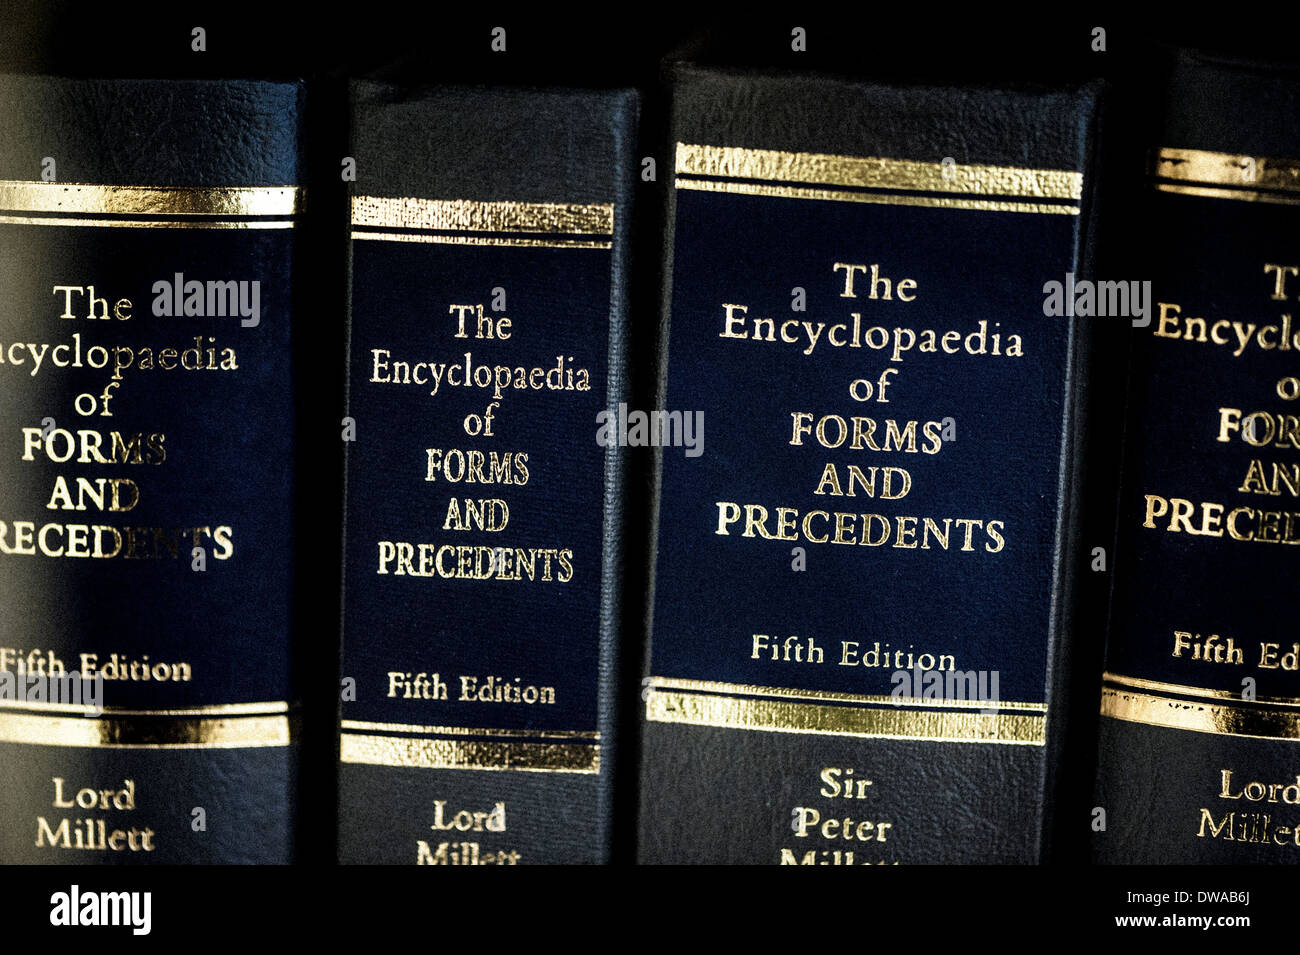 Encyclopaedias of forms and precedents - Stock Image